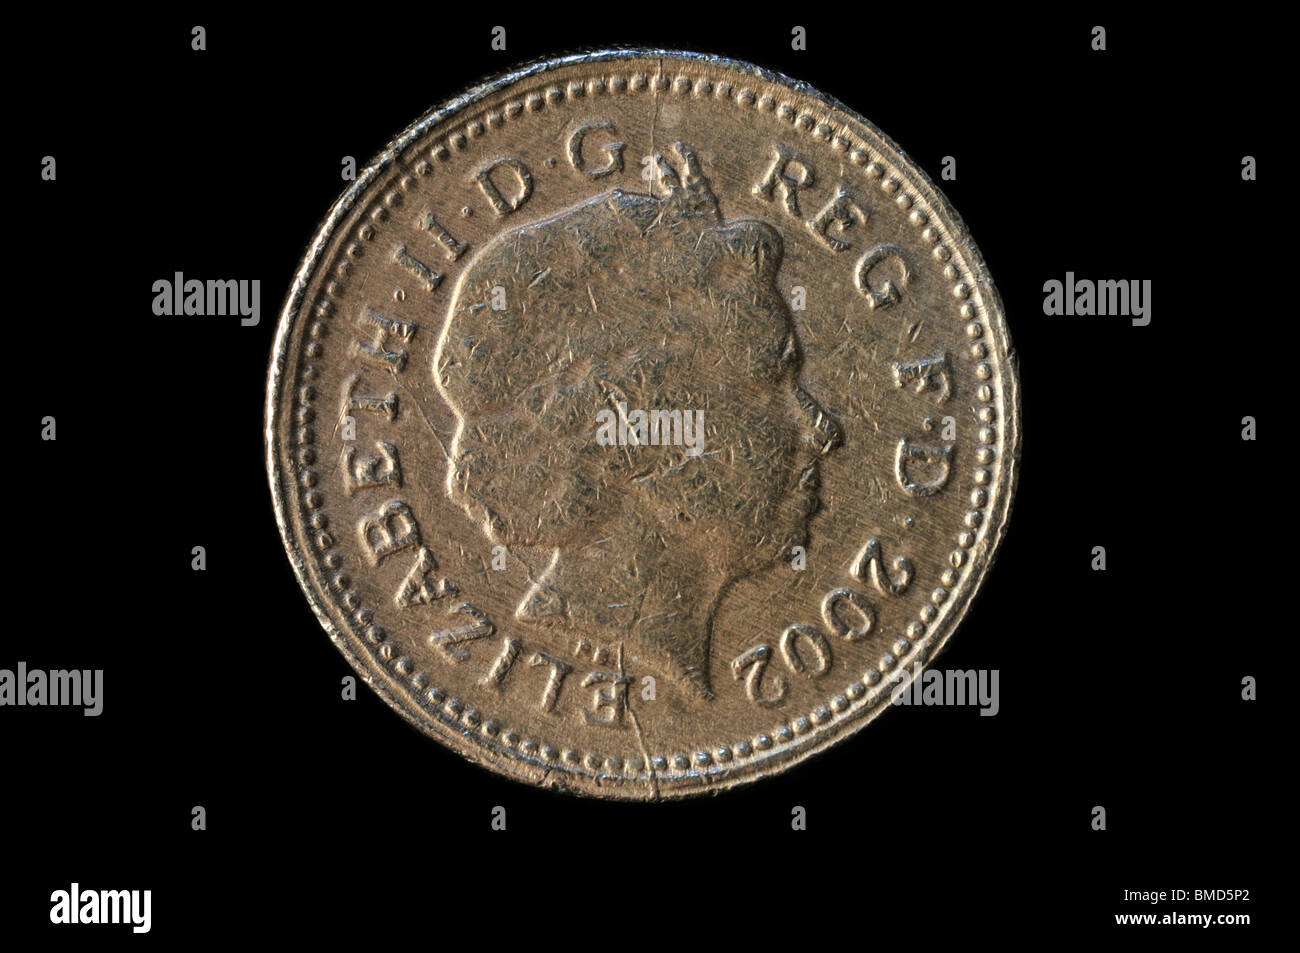 Fake UK 2002 one pound coin obverse showing third portrait with obvious flaws 1/2 - Stock Image